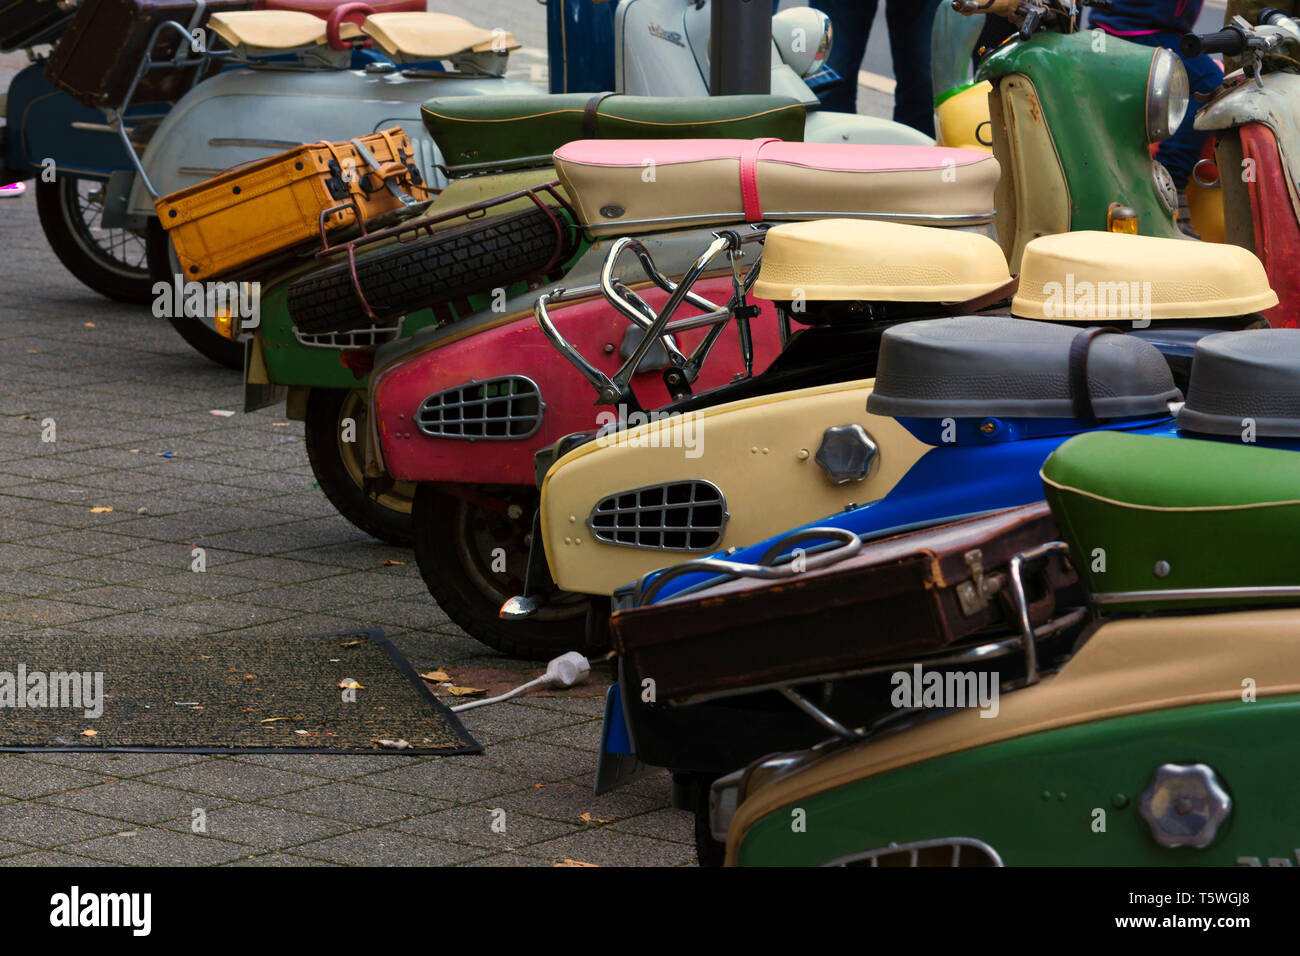 Various retro scooters line the road in a row. - Stock Image